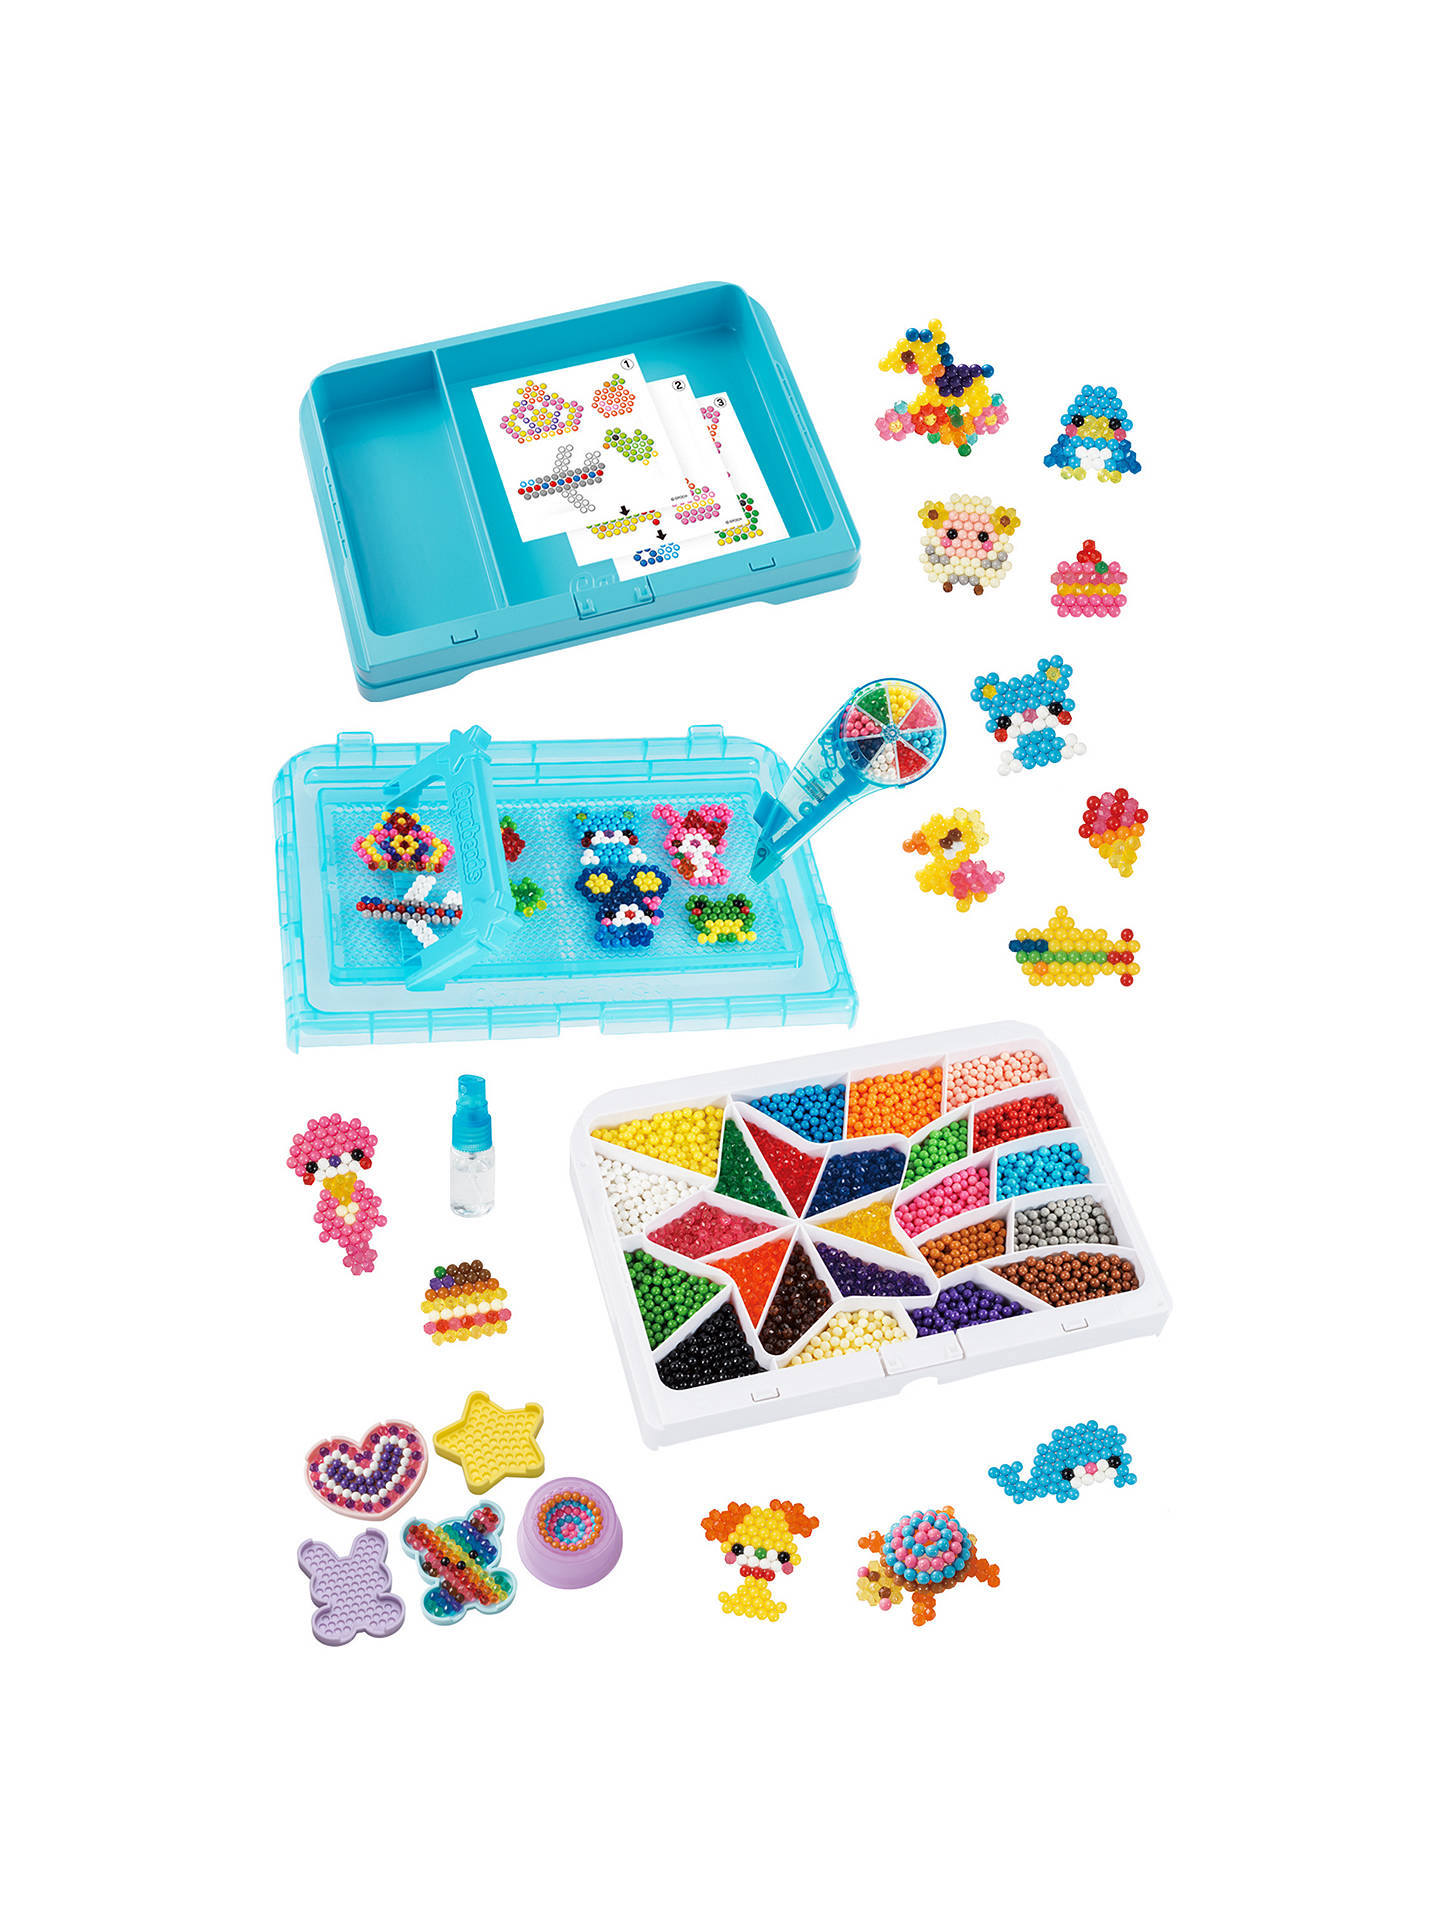 Buy Aquabeads Deluxe Studio Online at johnlewis.com